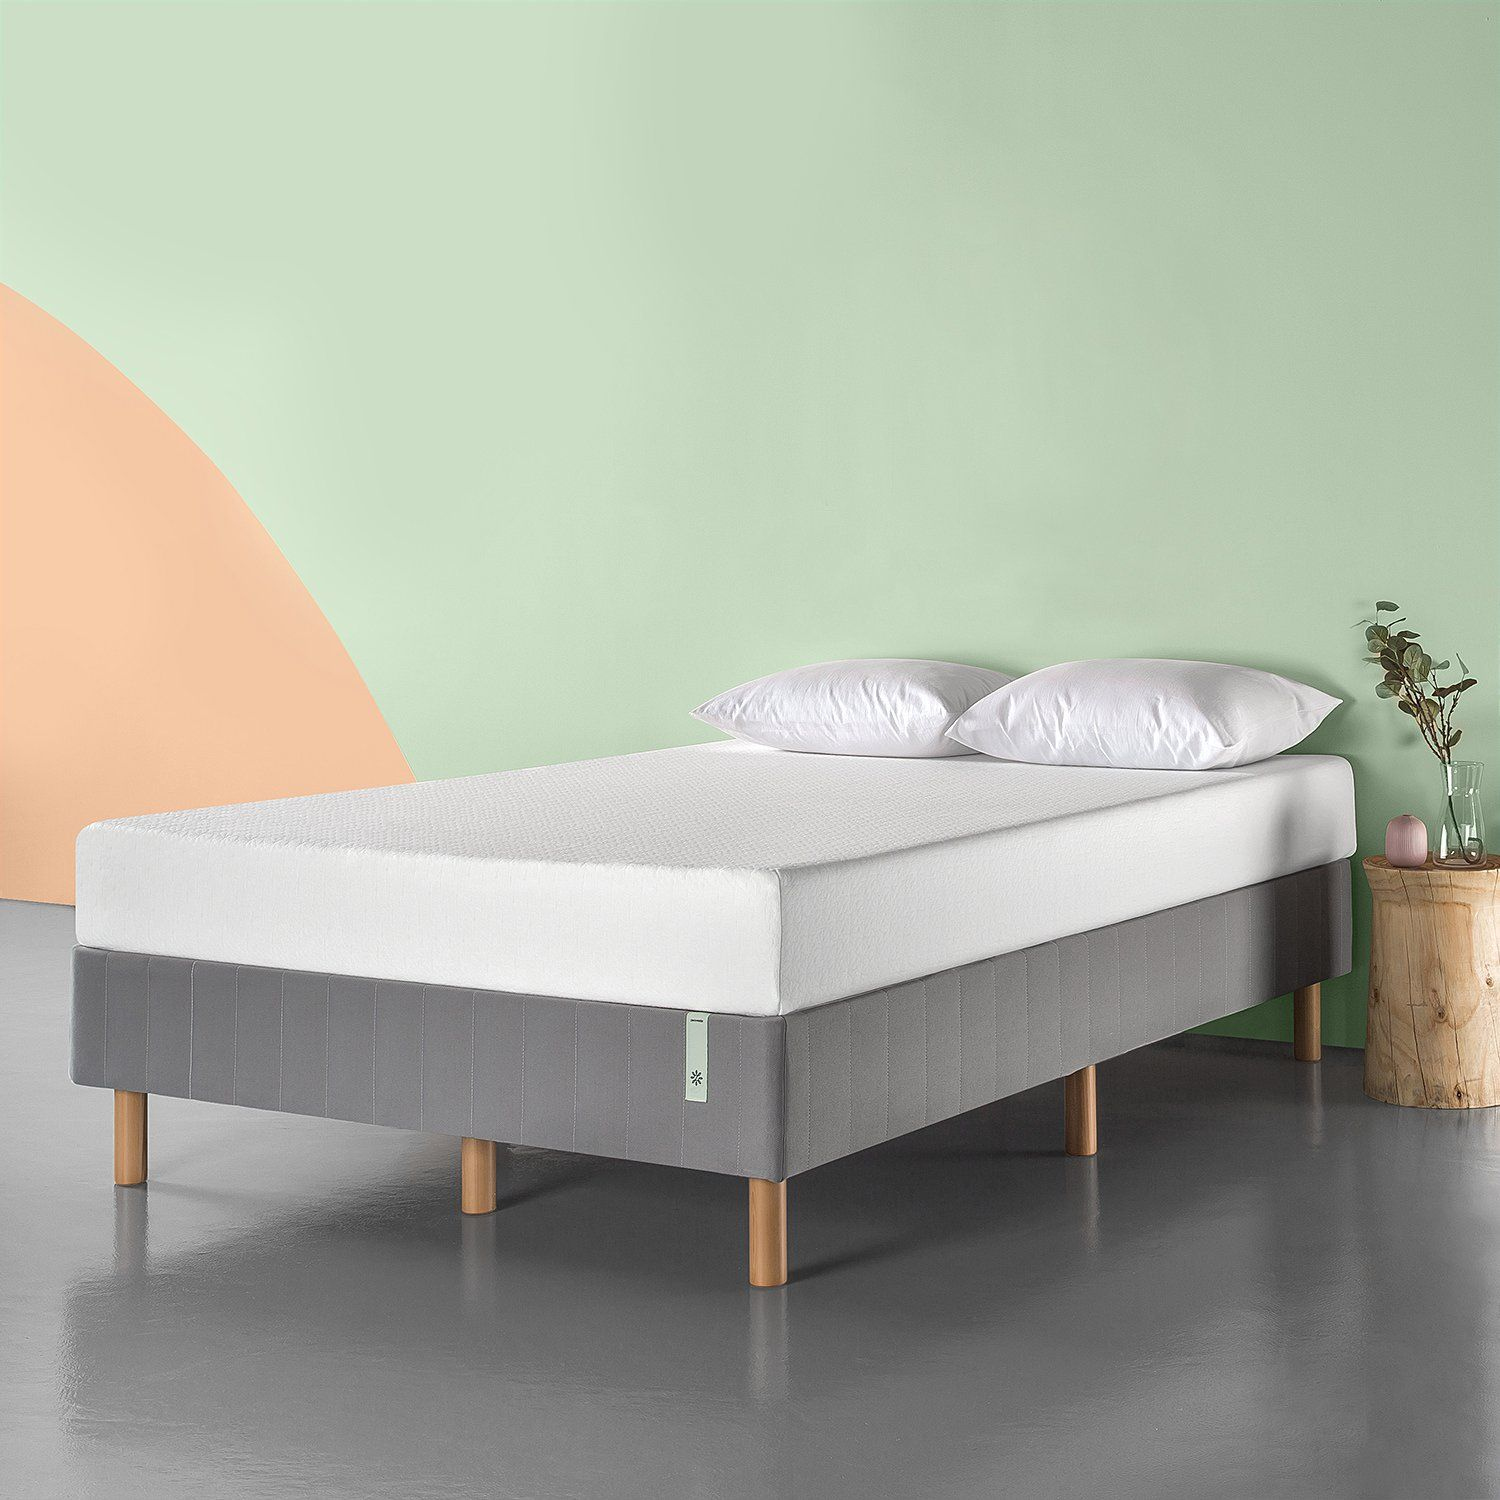 135.64 Upholstered bed frame, Bed frame mattress